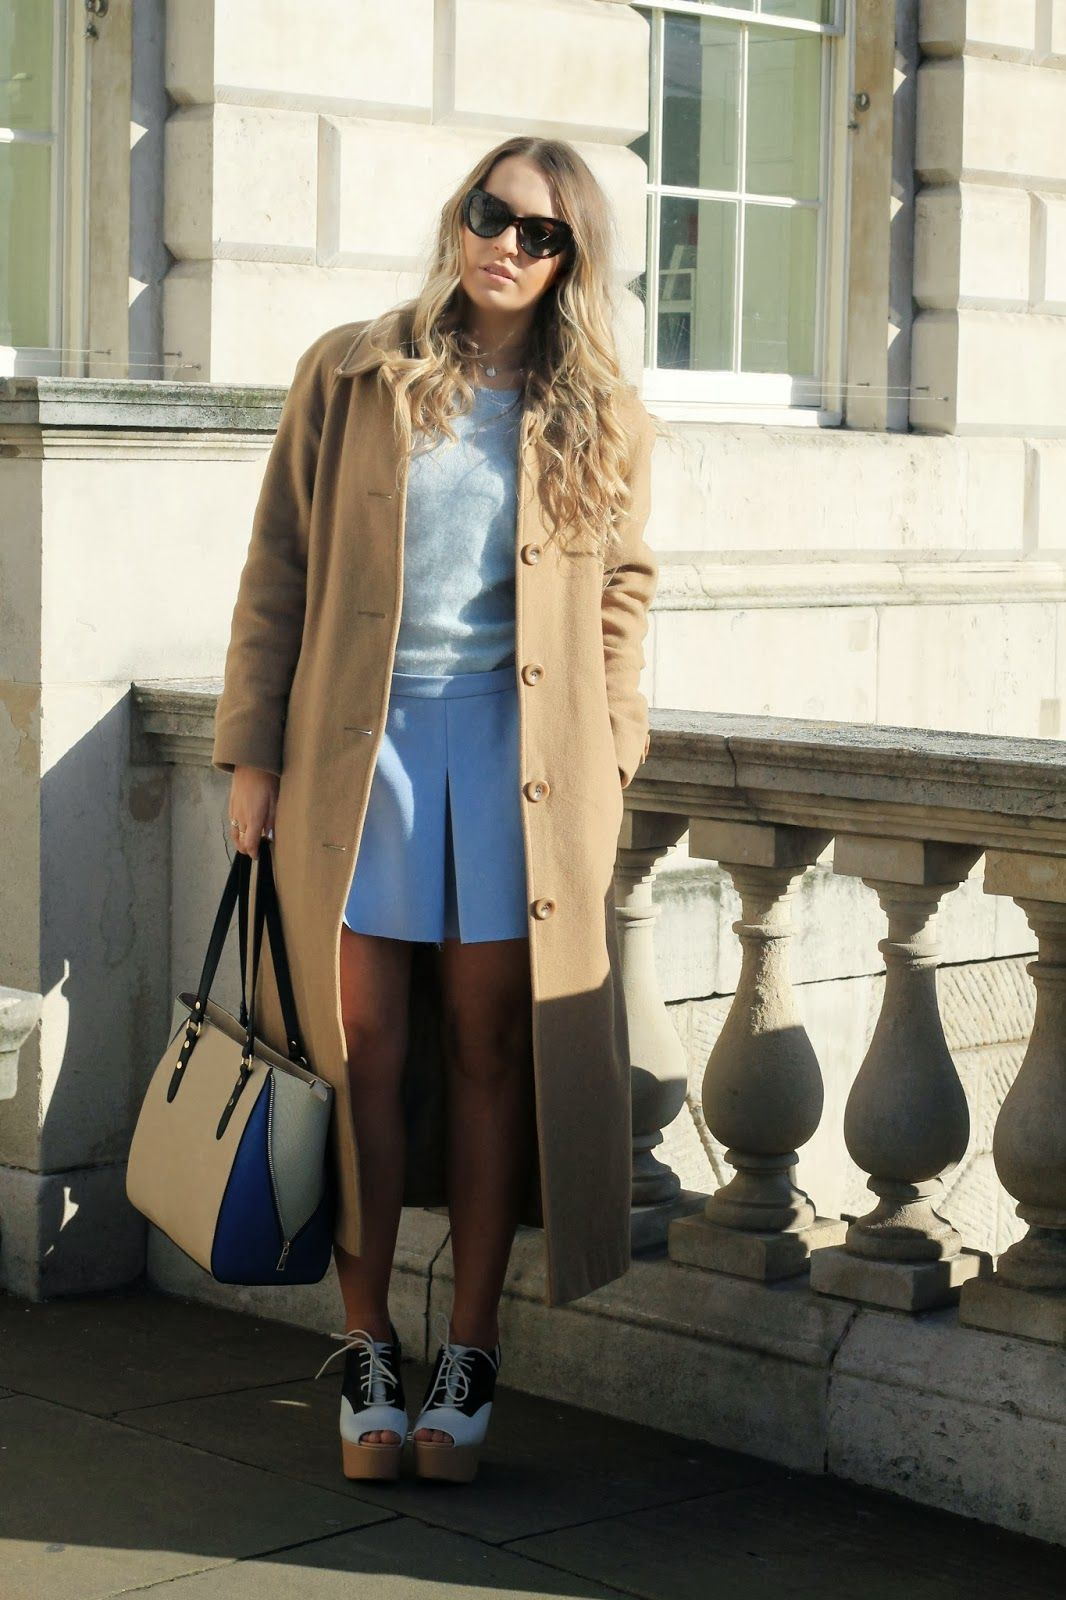 The Style Confessional wearing our Wool Camel Coat. Read the blog: http://www.styleconfessional.com/2014/02/lfw-aw14-day-3.html